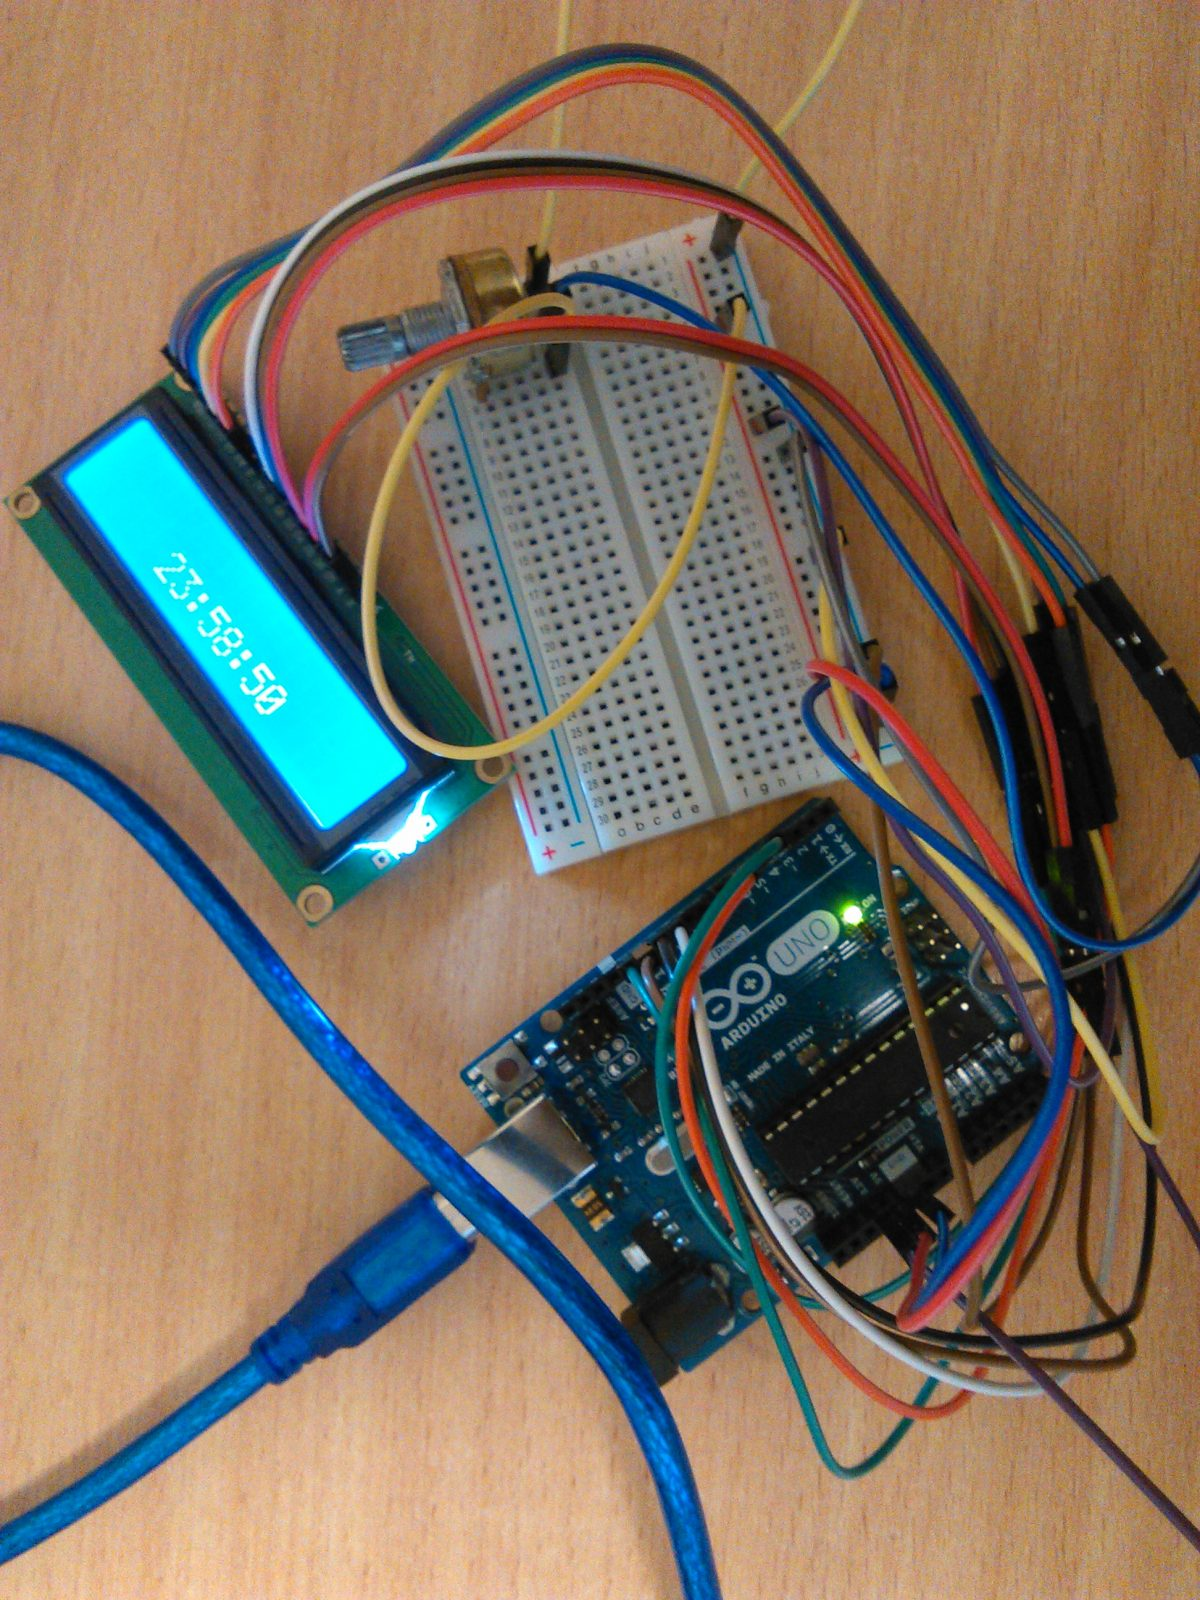 Timer function to provide time in nano seconds using